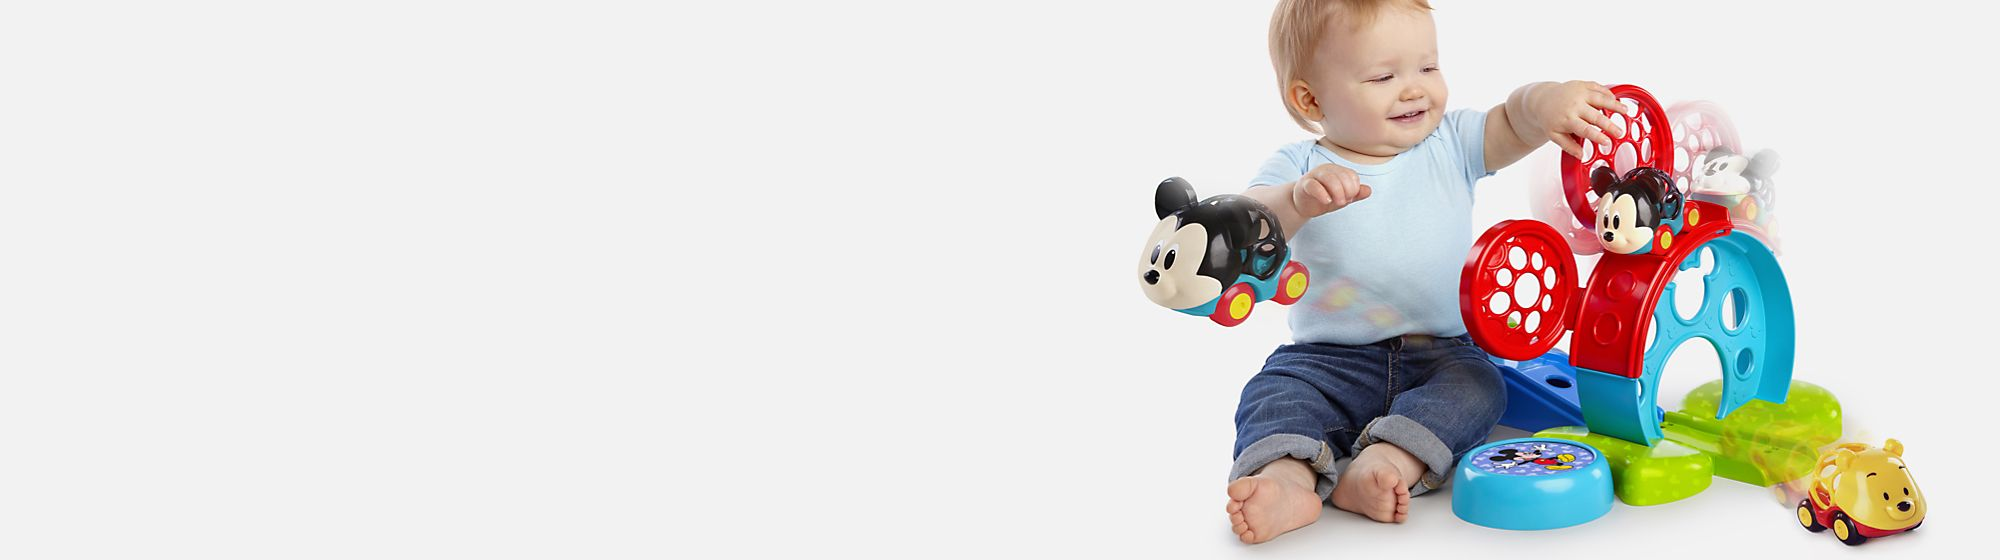 Nursery Toys Discover our range of nursery toys perfect for your littlest arrival featuring Mickey Mouse, Winnie the Pooh and more